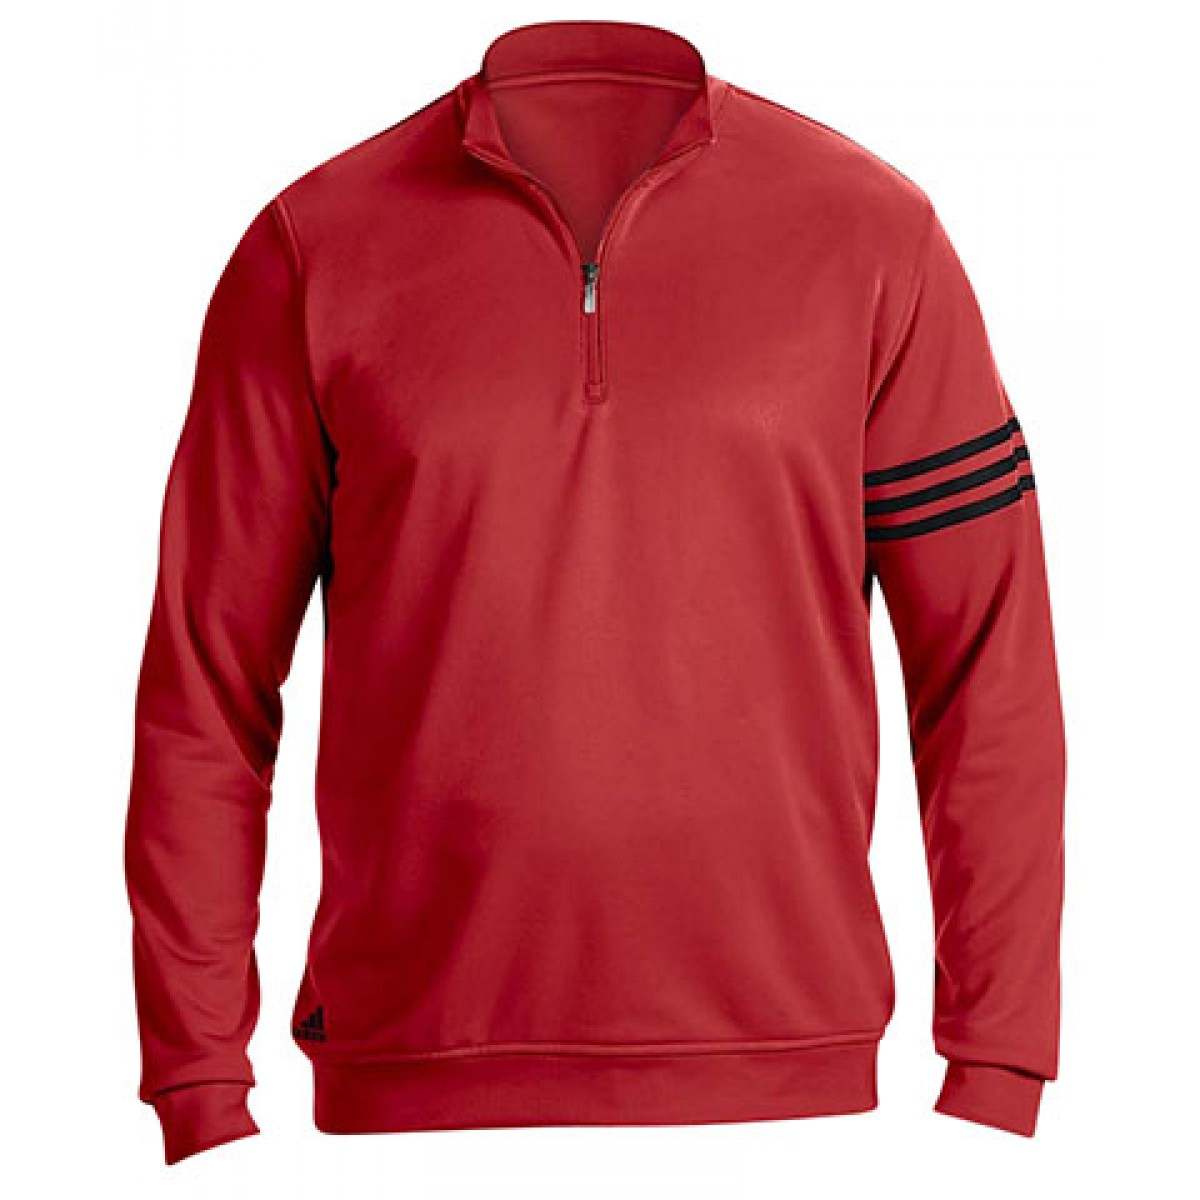 Adidas Men's 3-Stripes Pullover-Red-3XL